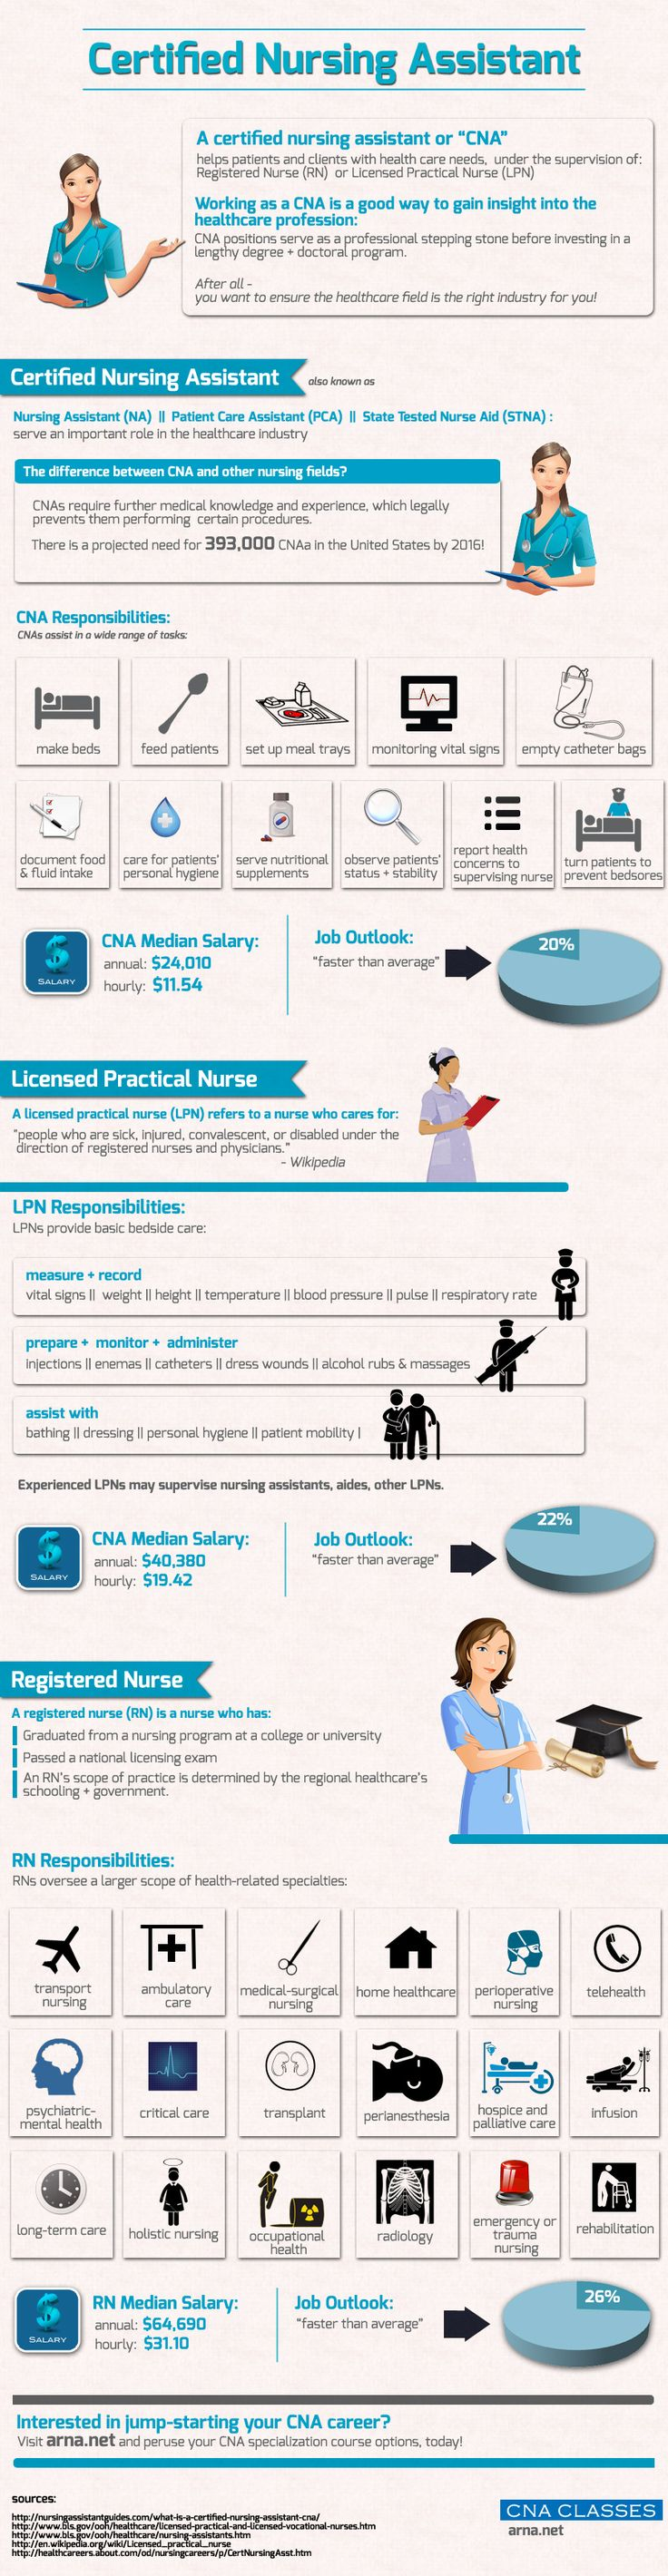 39 best work images on pinterest gym productivity and learning educational infographic data visualisation a great cna certified nursing assistant educational infographic infographic description a fandeluxe